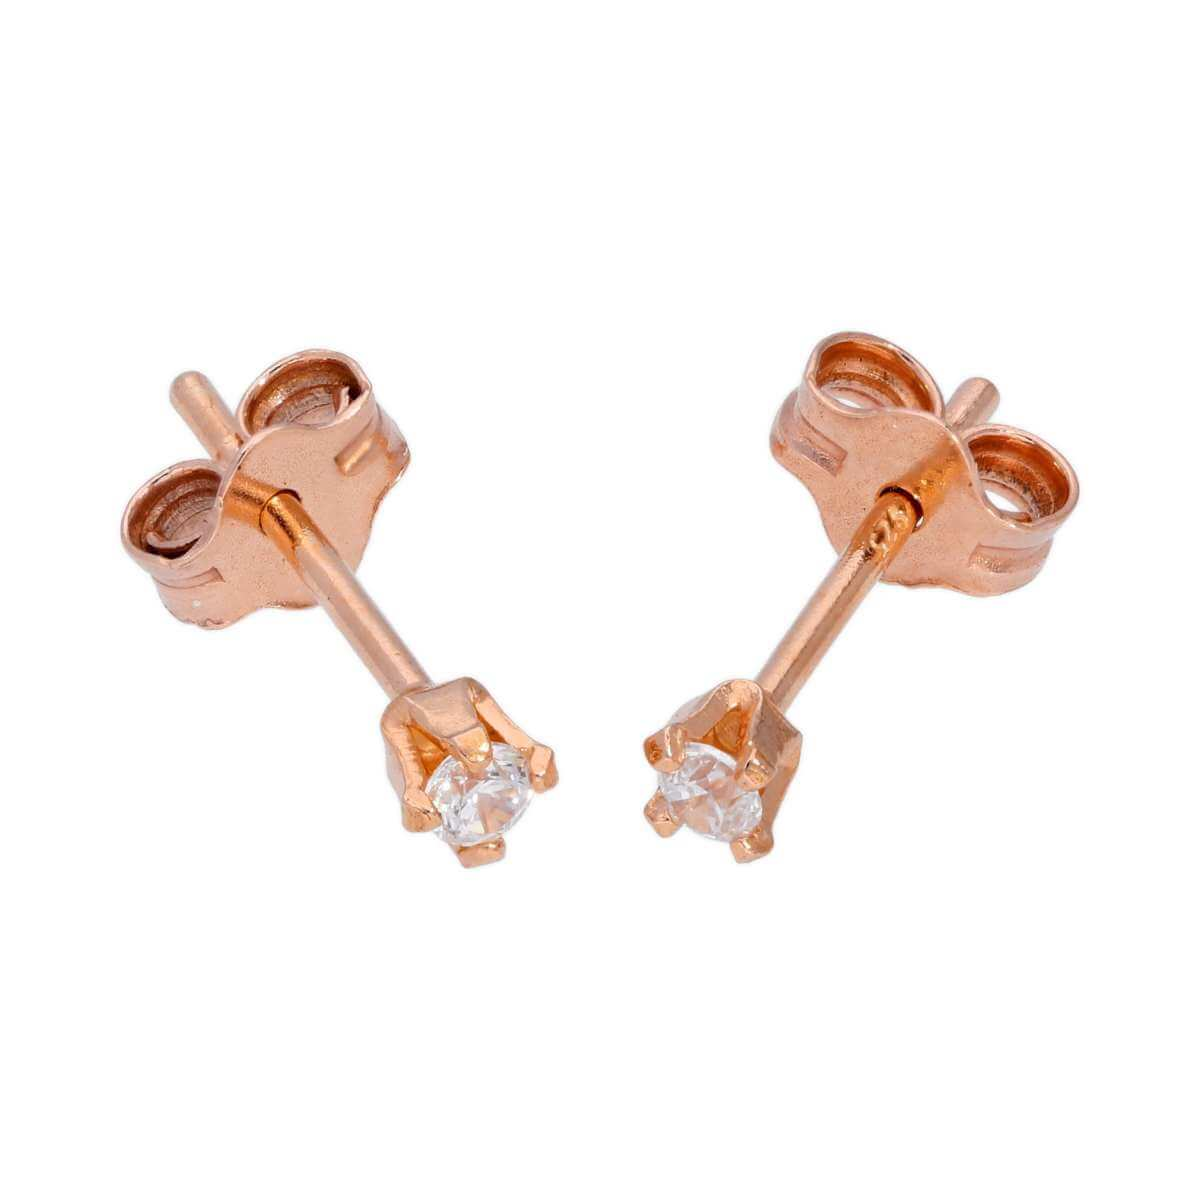 Rose Gold Plated Sterling Silver & 2mm Round CZ Crystal Stud Earrings